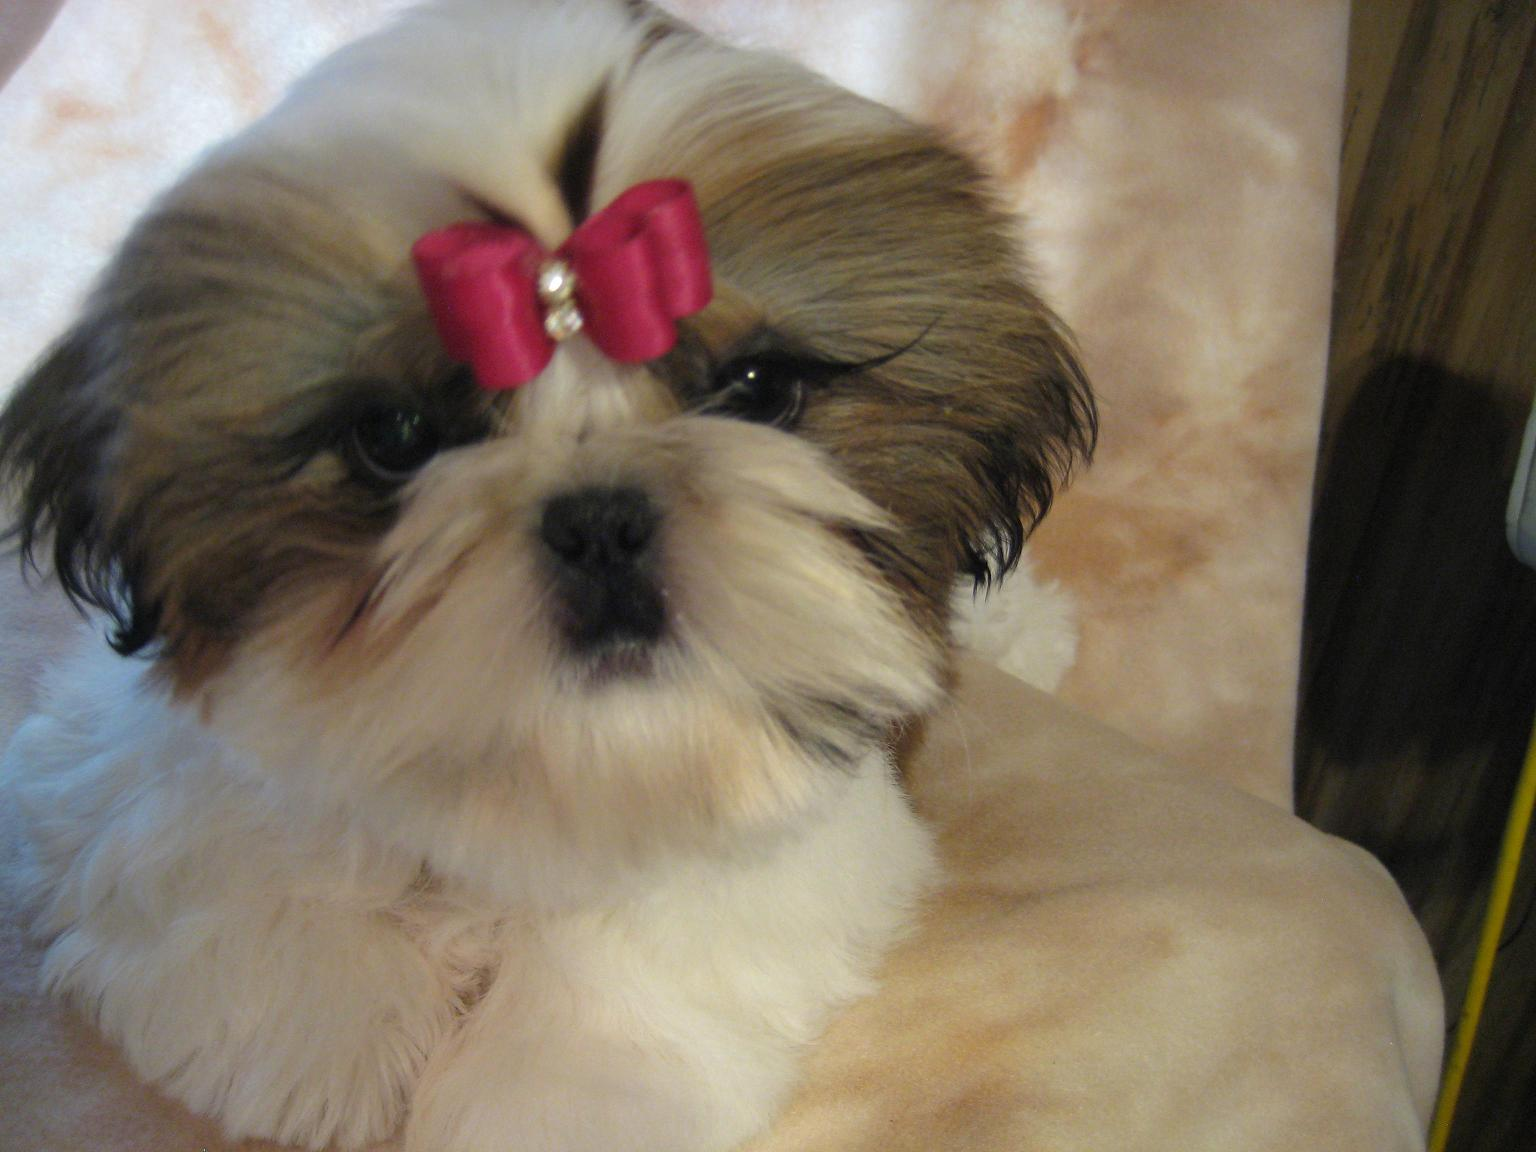 Shih Tzu dog with a red bow wallpaper